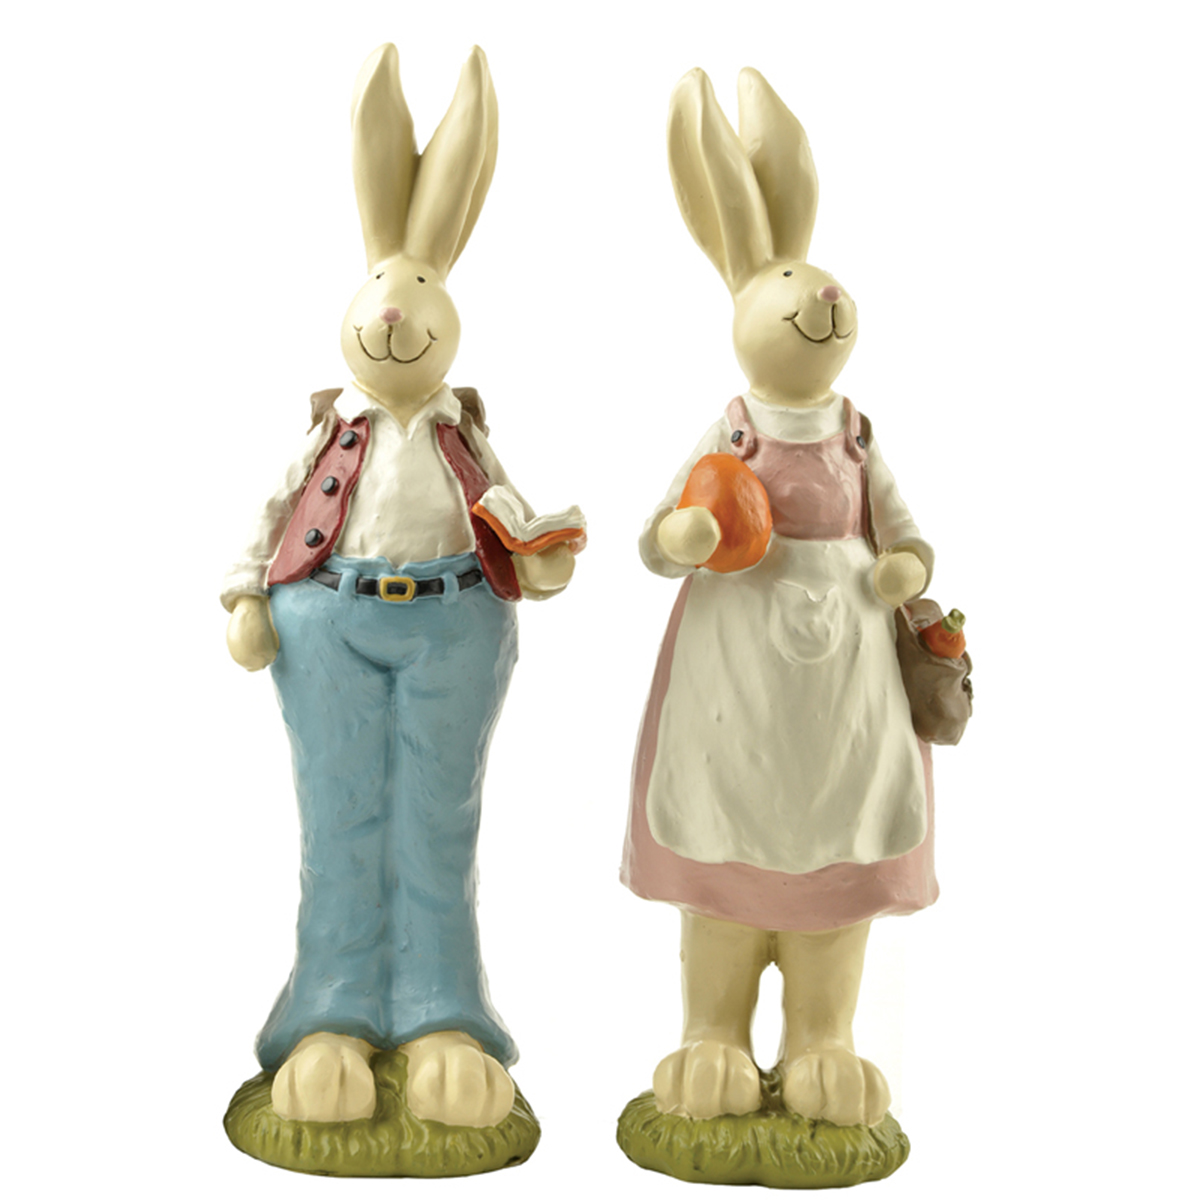 Ennas easter bunny figurines top brand micro landscape-1